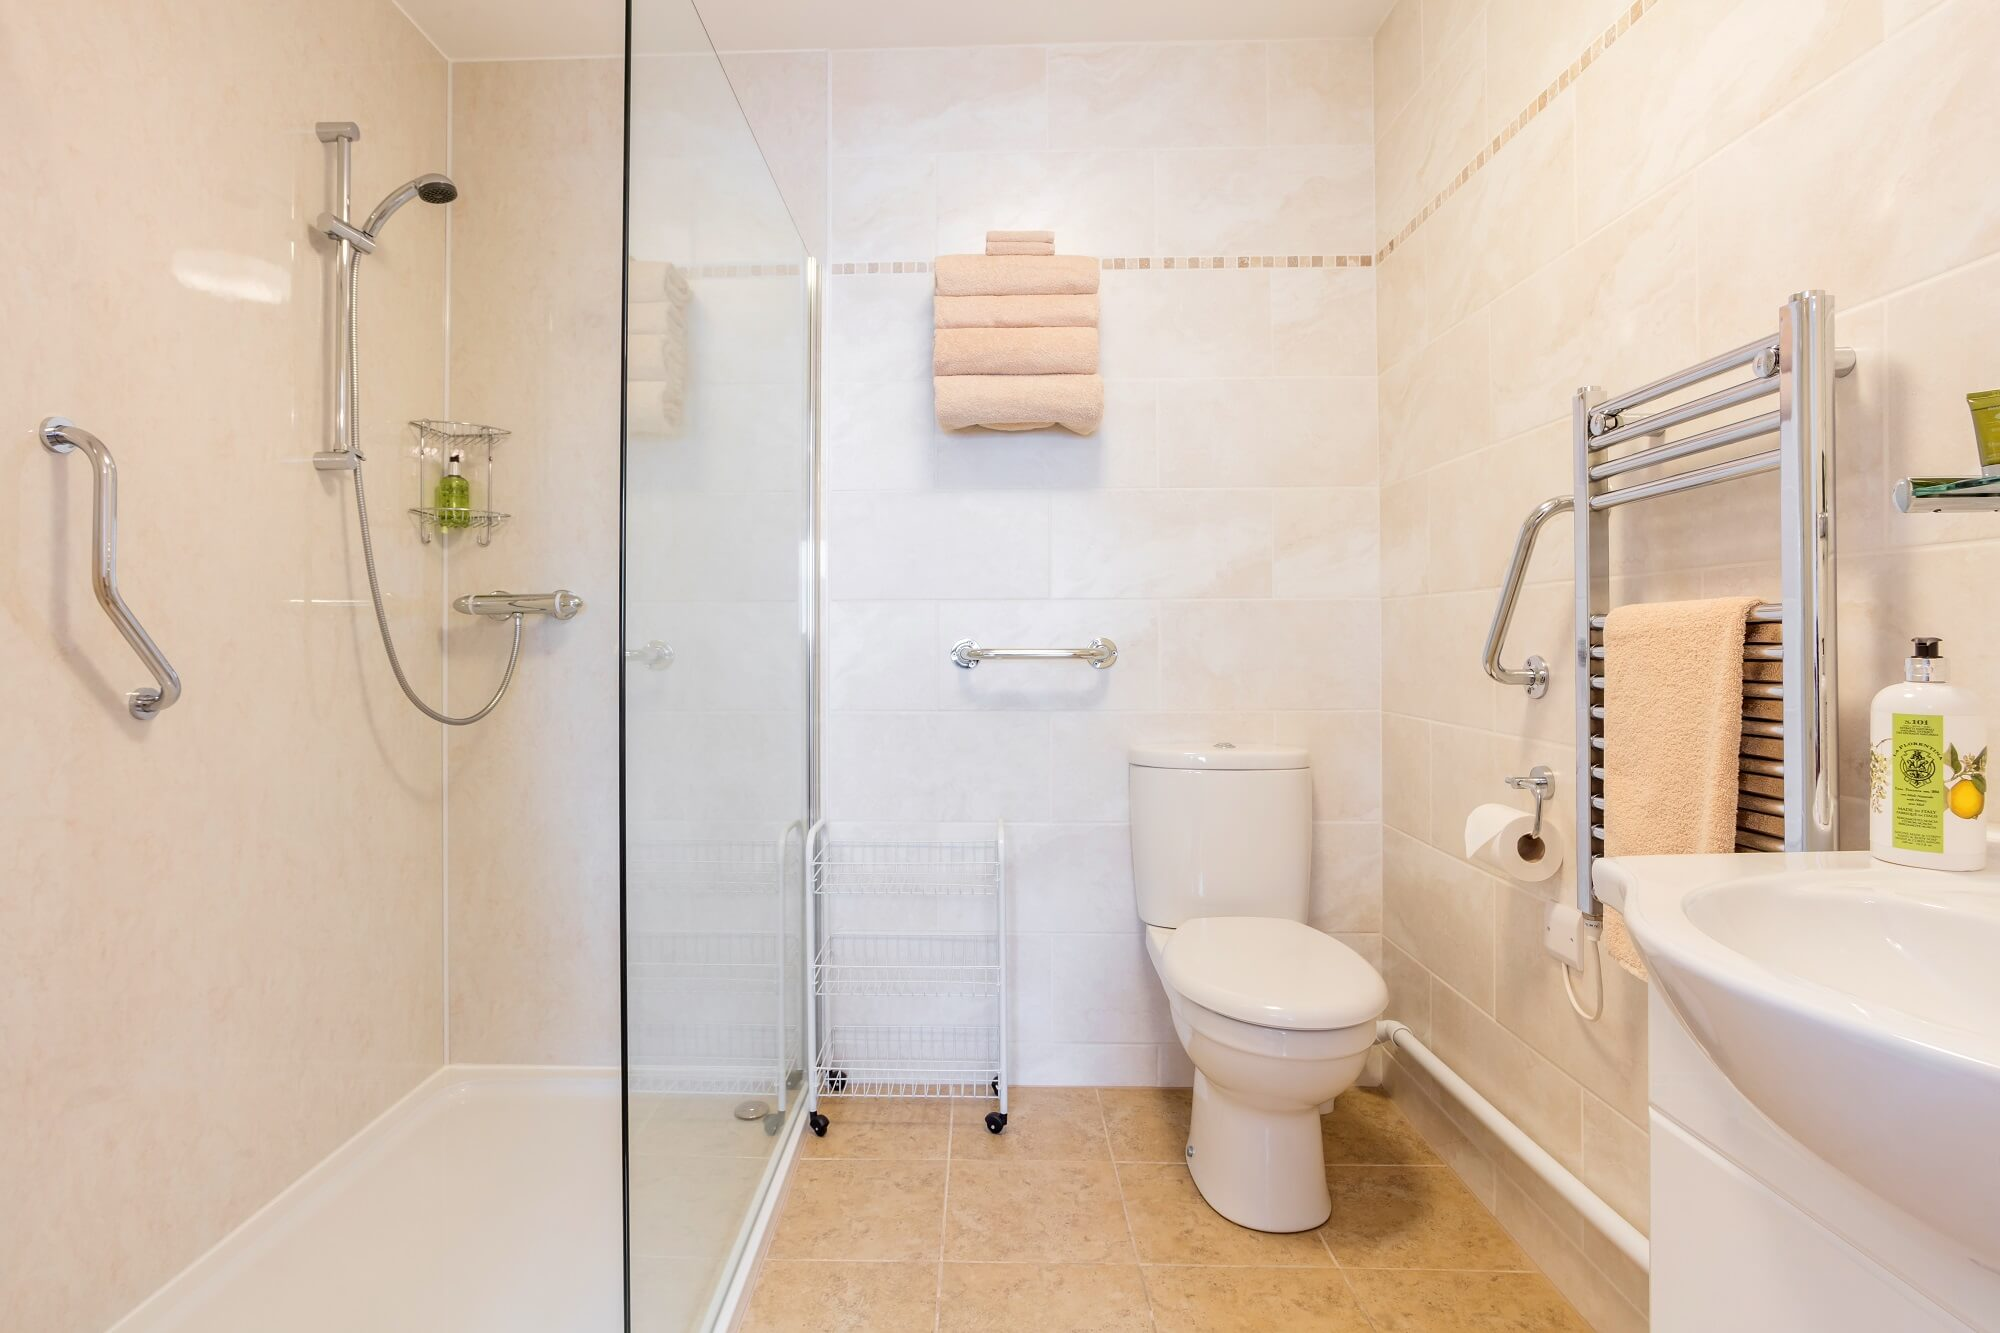 Suite 1 shower room Redhouse Farm Bed & Breakfast, Lincolnshire